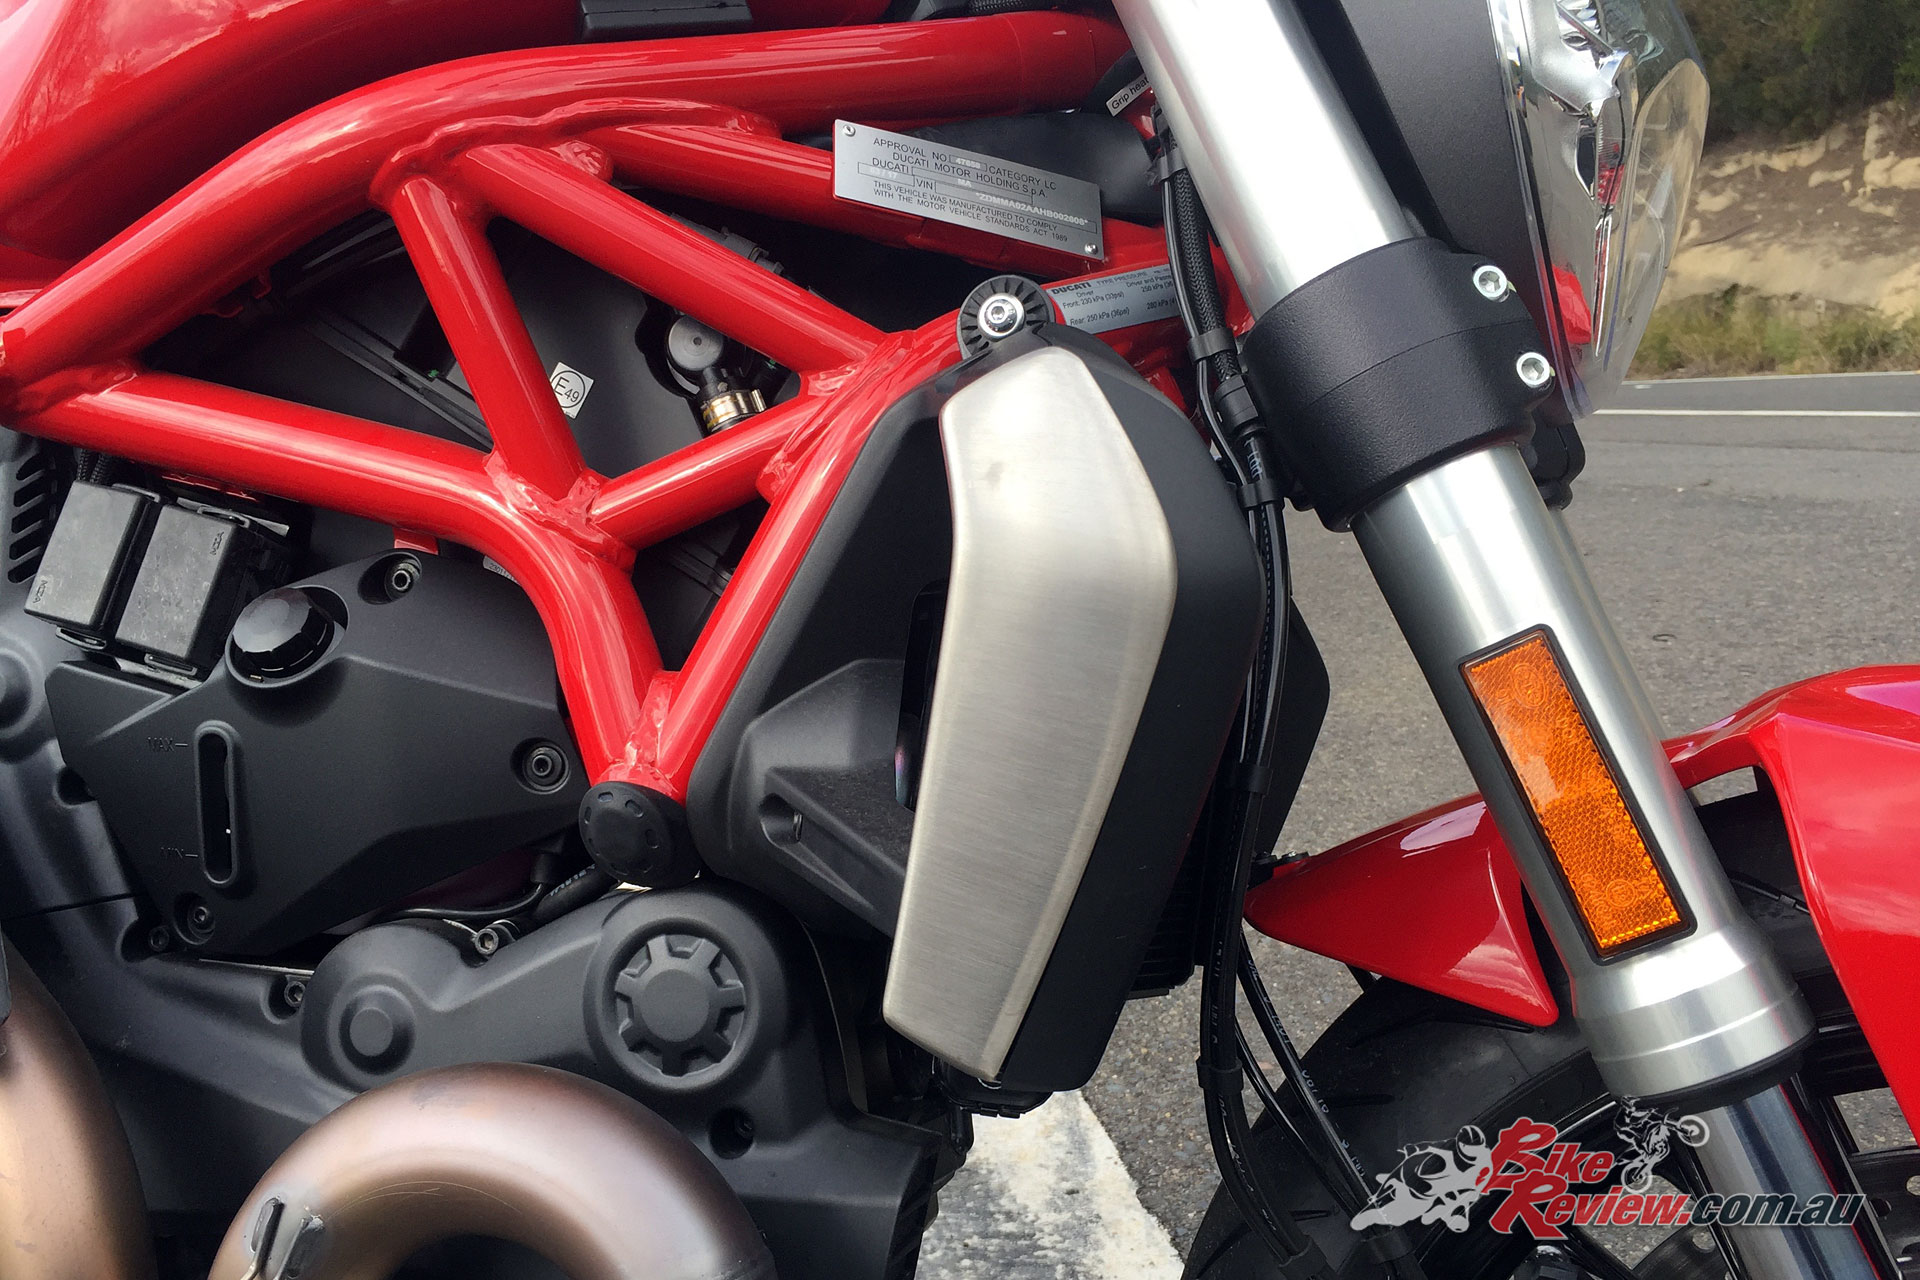 The compact Ducati trellis frame, mounted directly onto the cylinder-heads and the engine